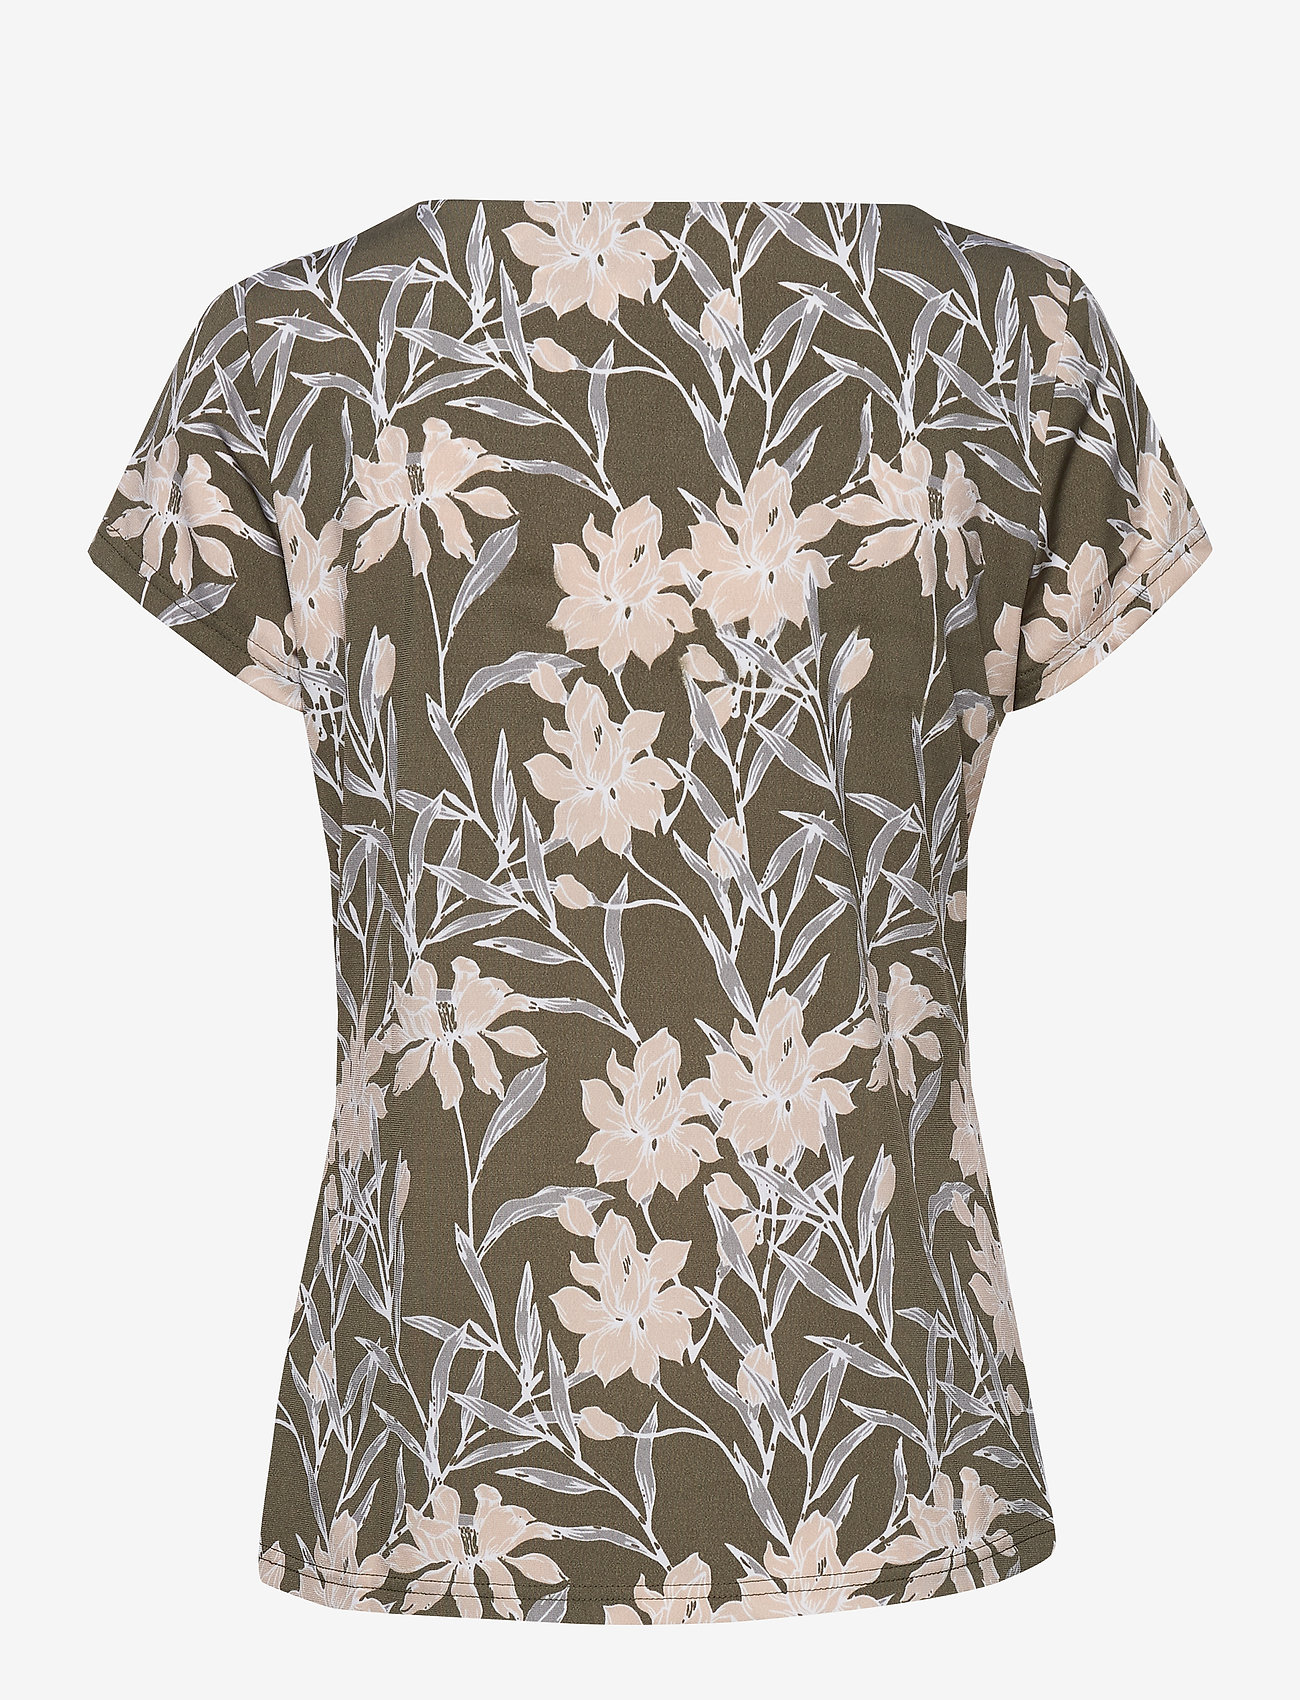 Fransa FRJESELF 1 Blouse - Blouses & Shirts HEDGE WITH LARGE FLOWERS